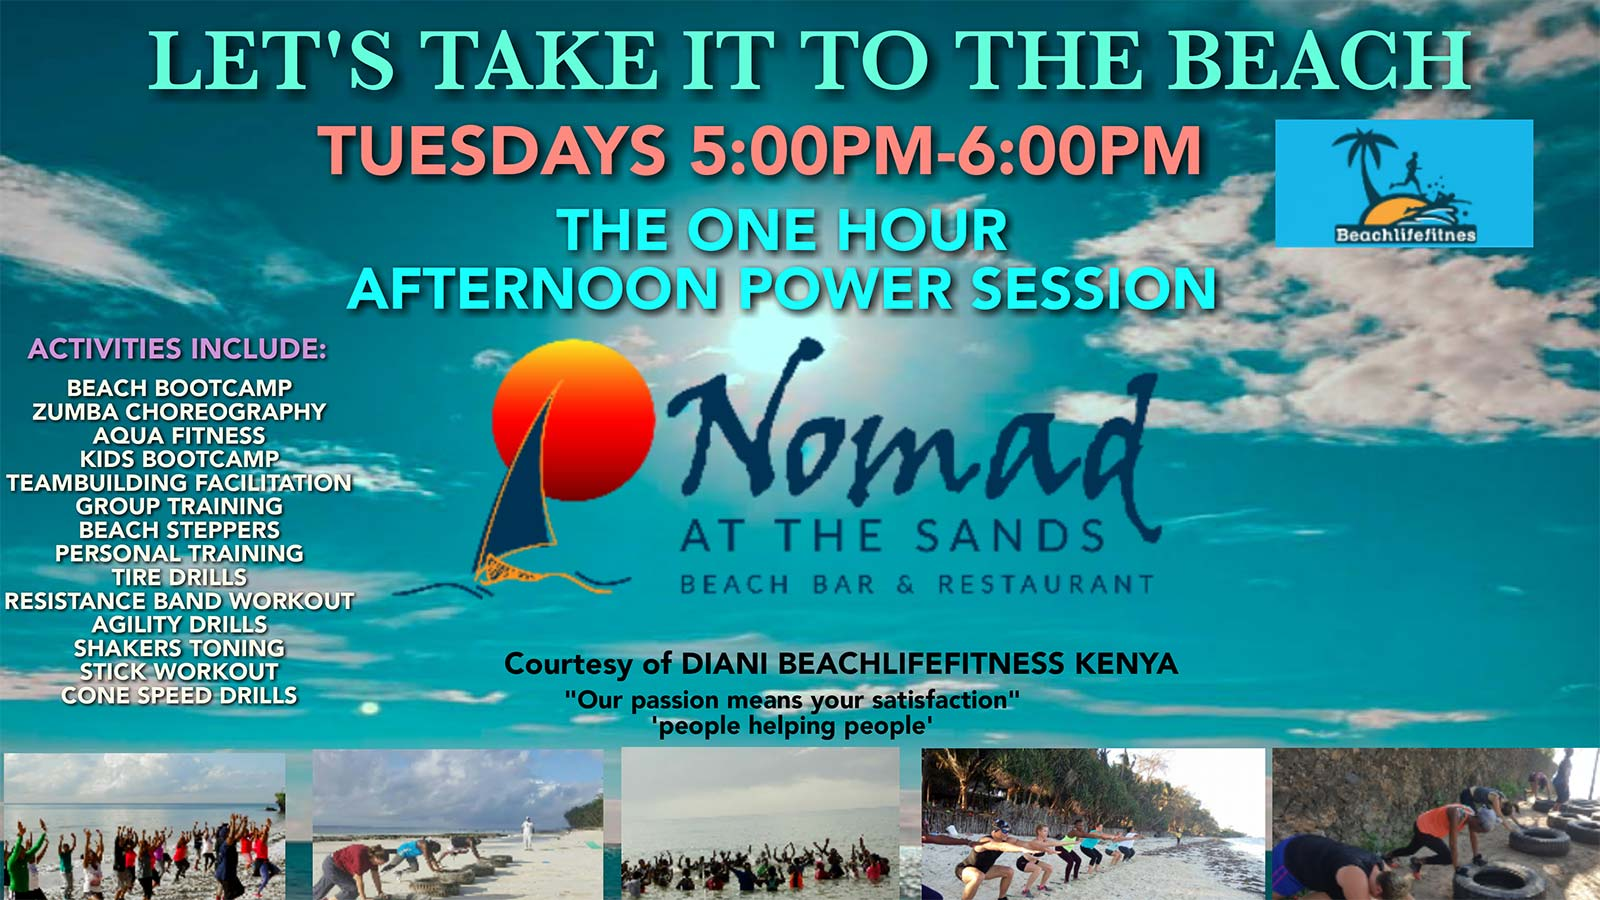 Nomad Beach Bar Events